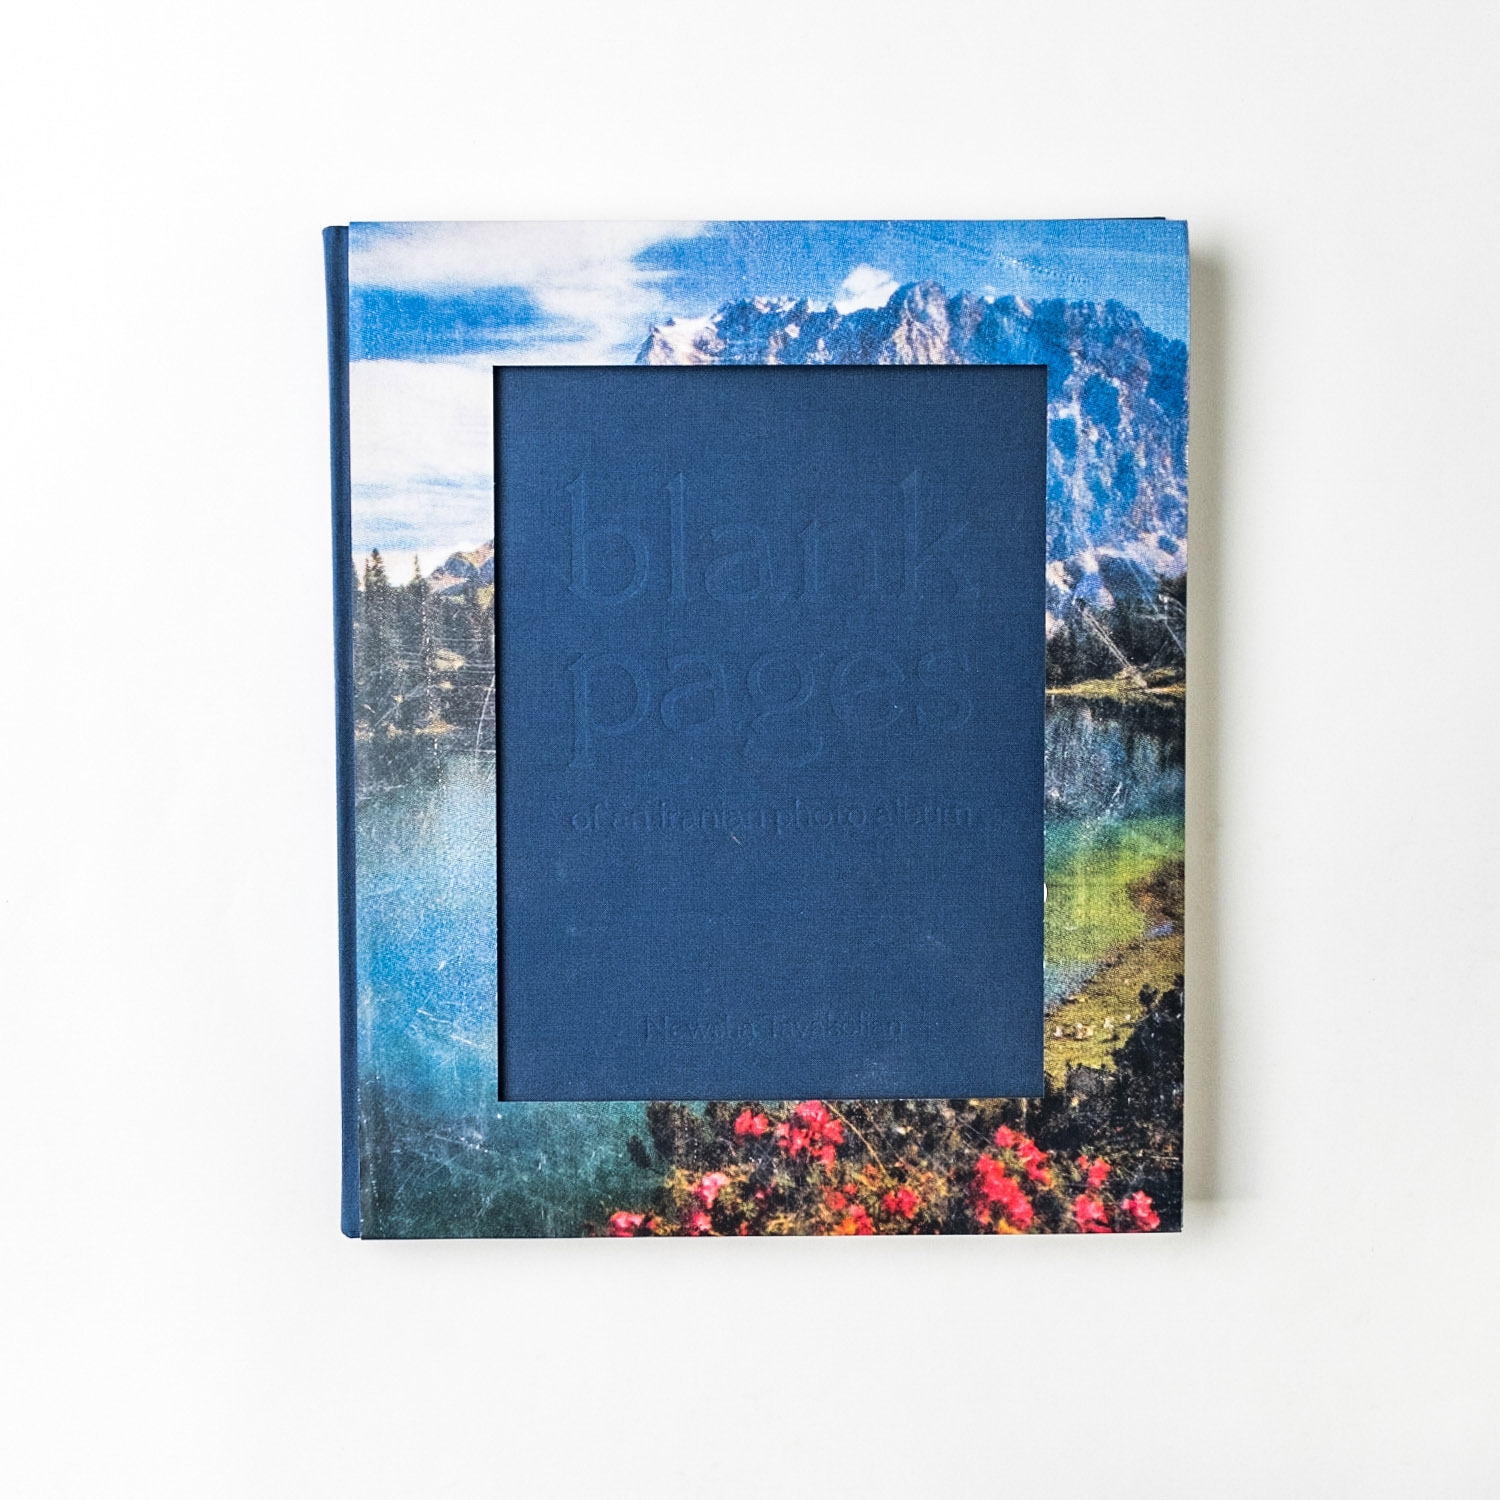 Blank Pages of an Iranian Photo Album